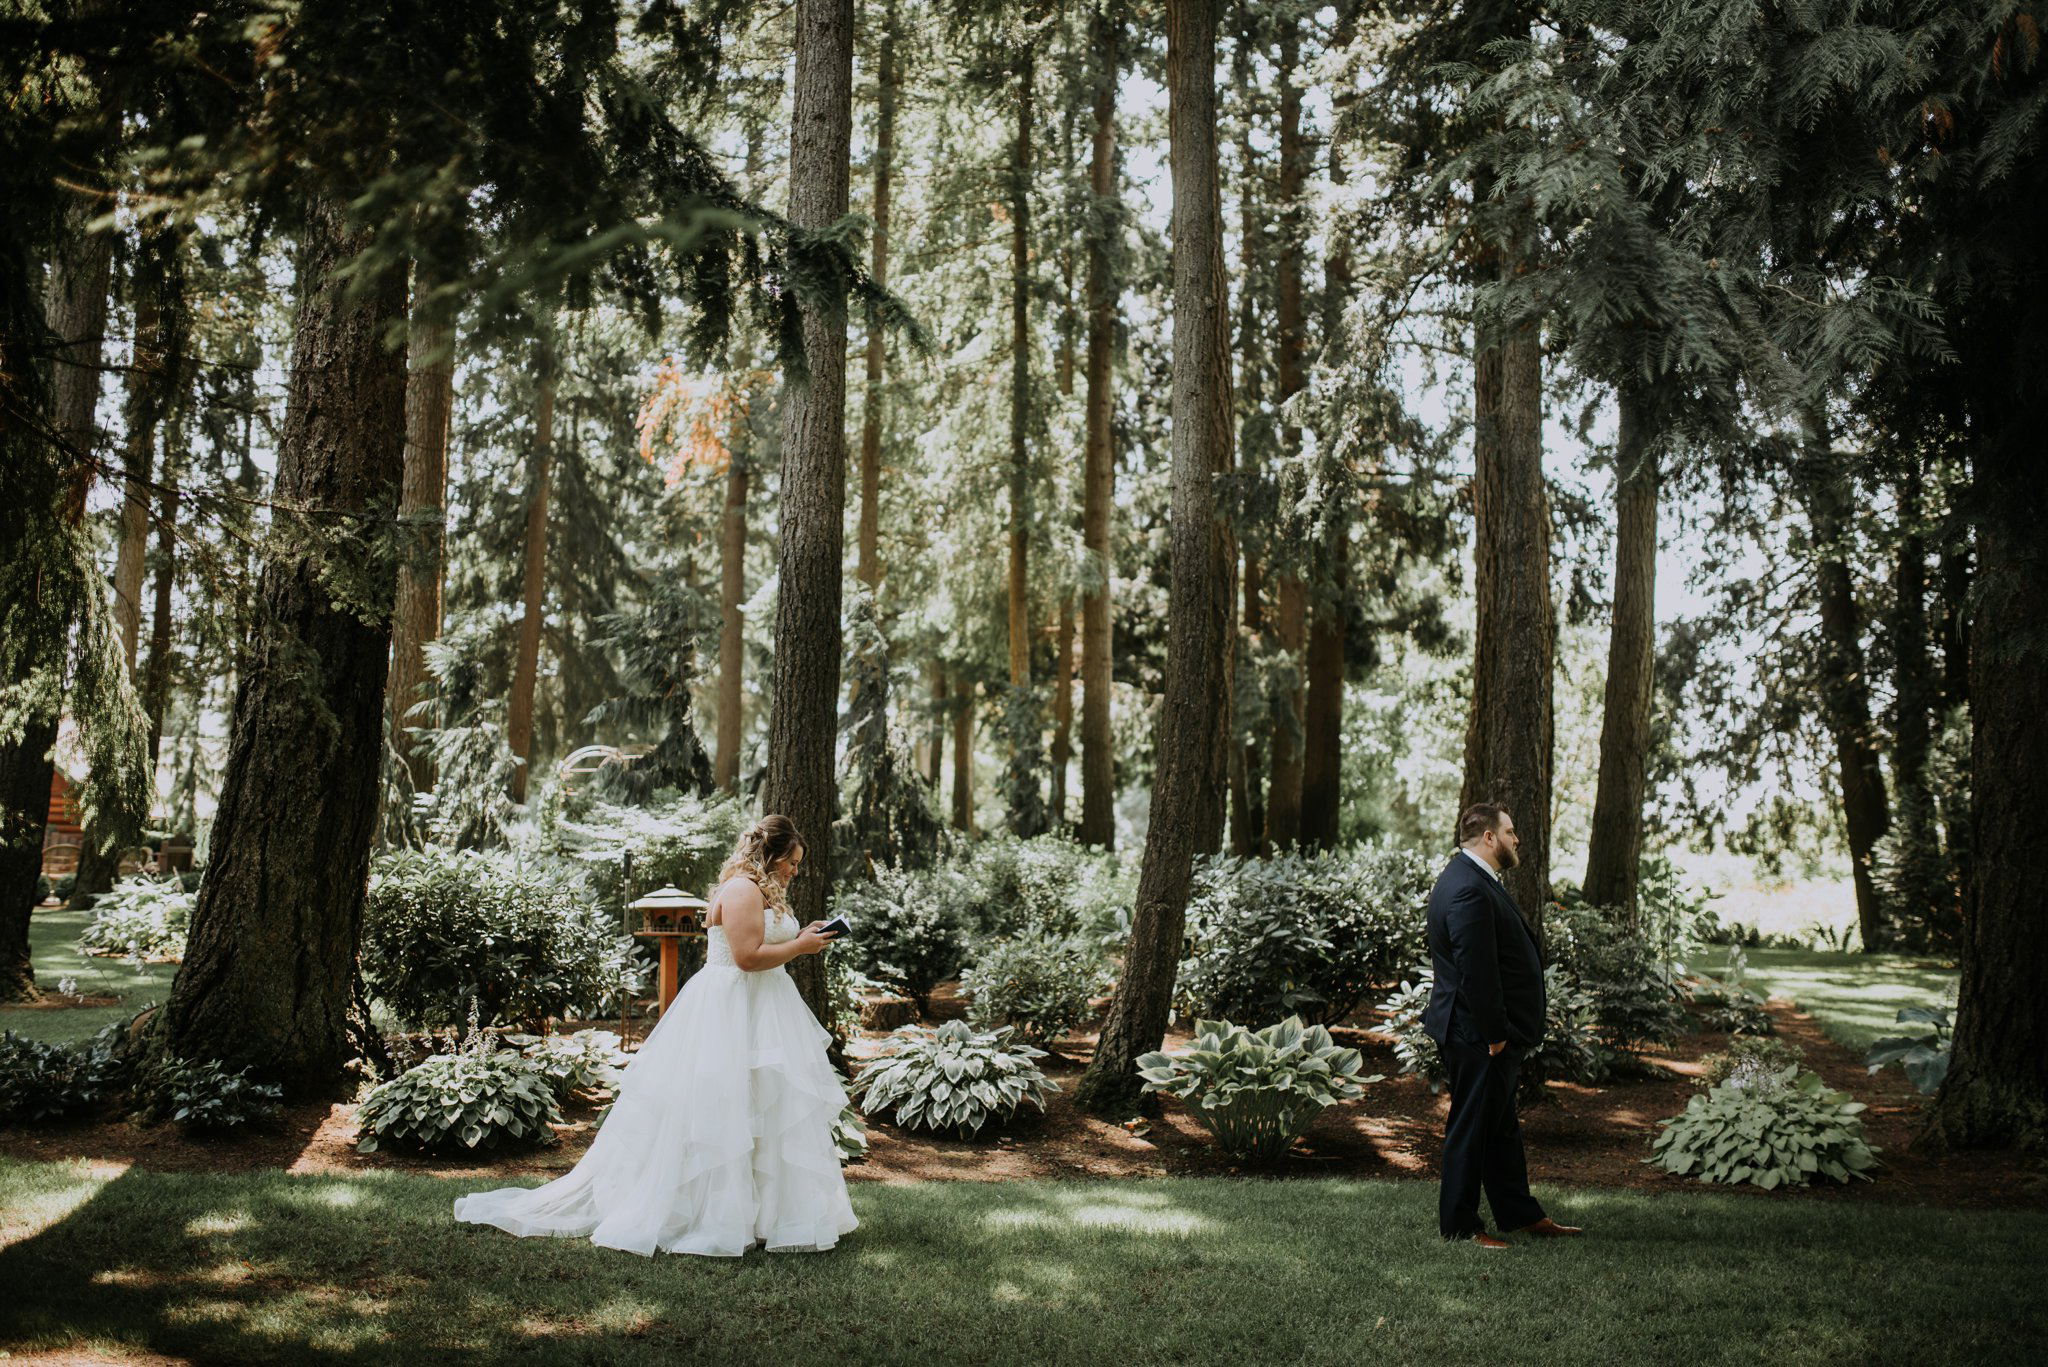 evergreen-gardens-bellingham-wedding-seattle-photographer-caitlyn-nikula-29.jpg